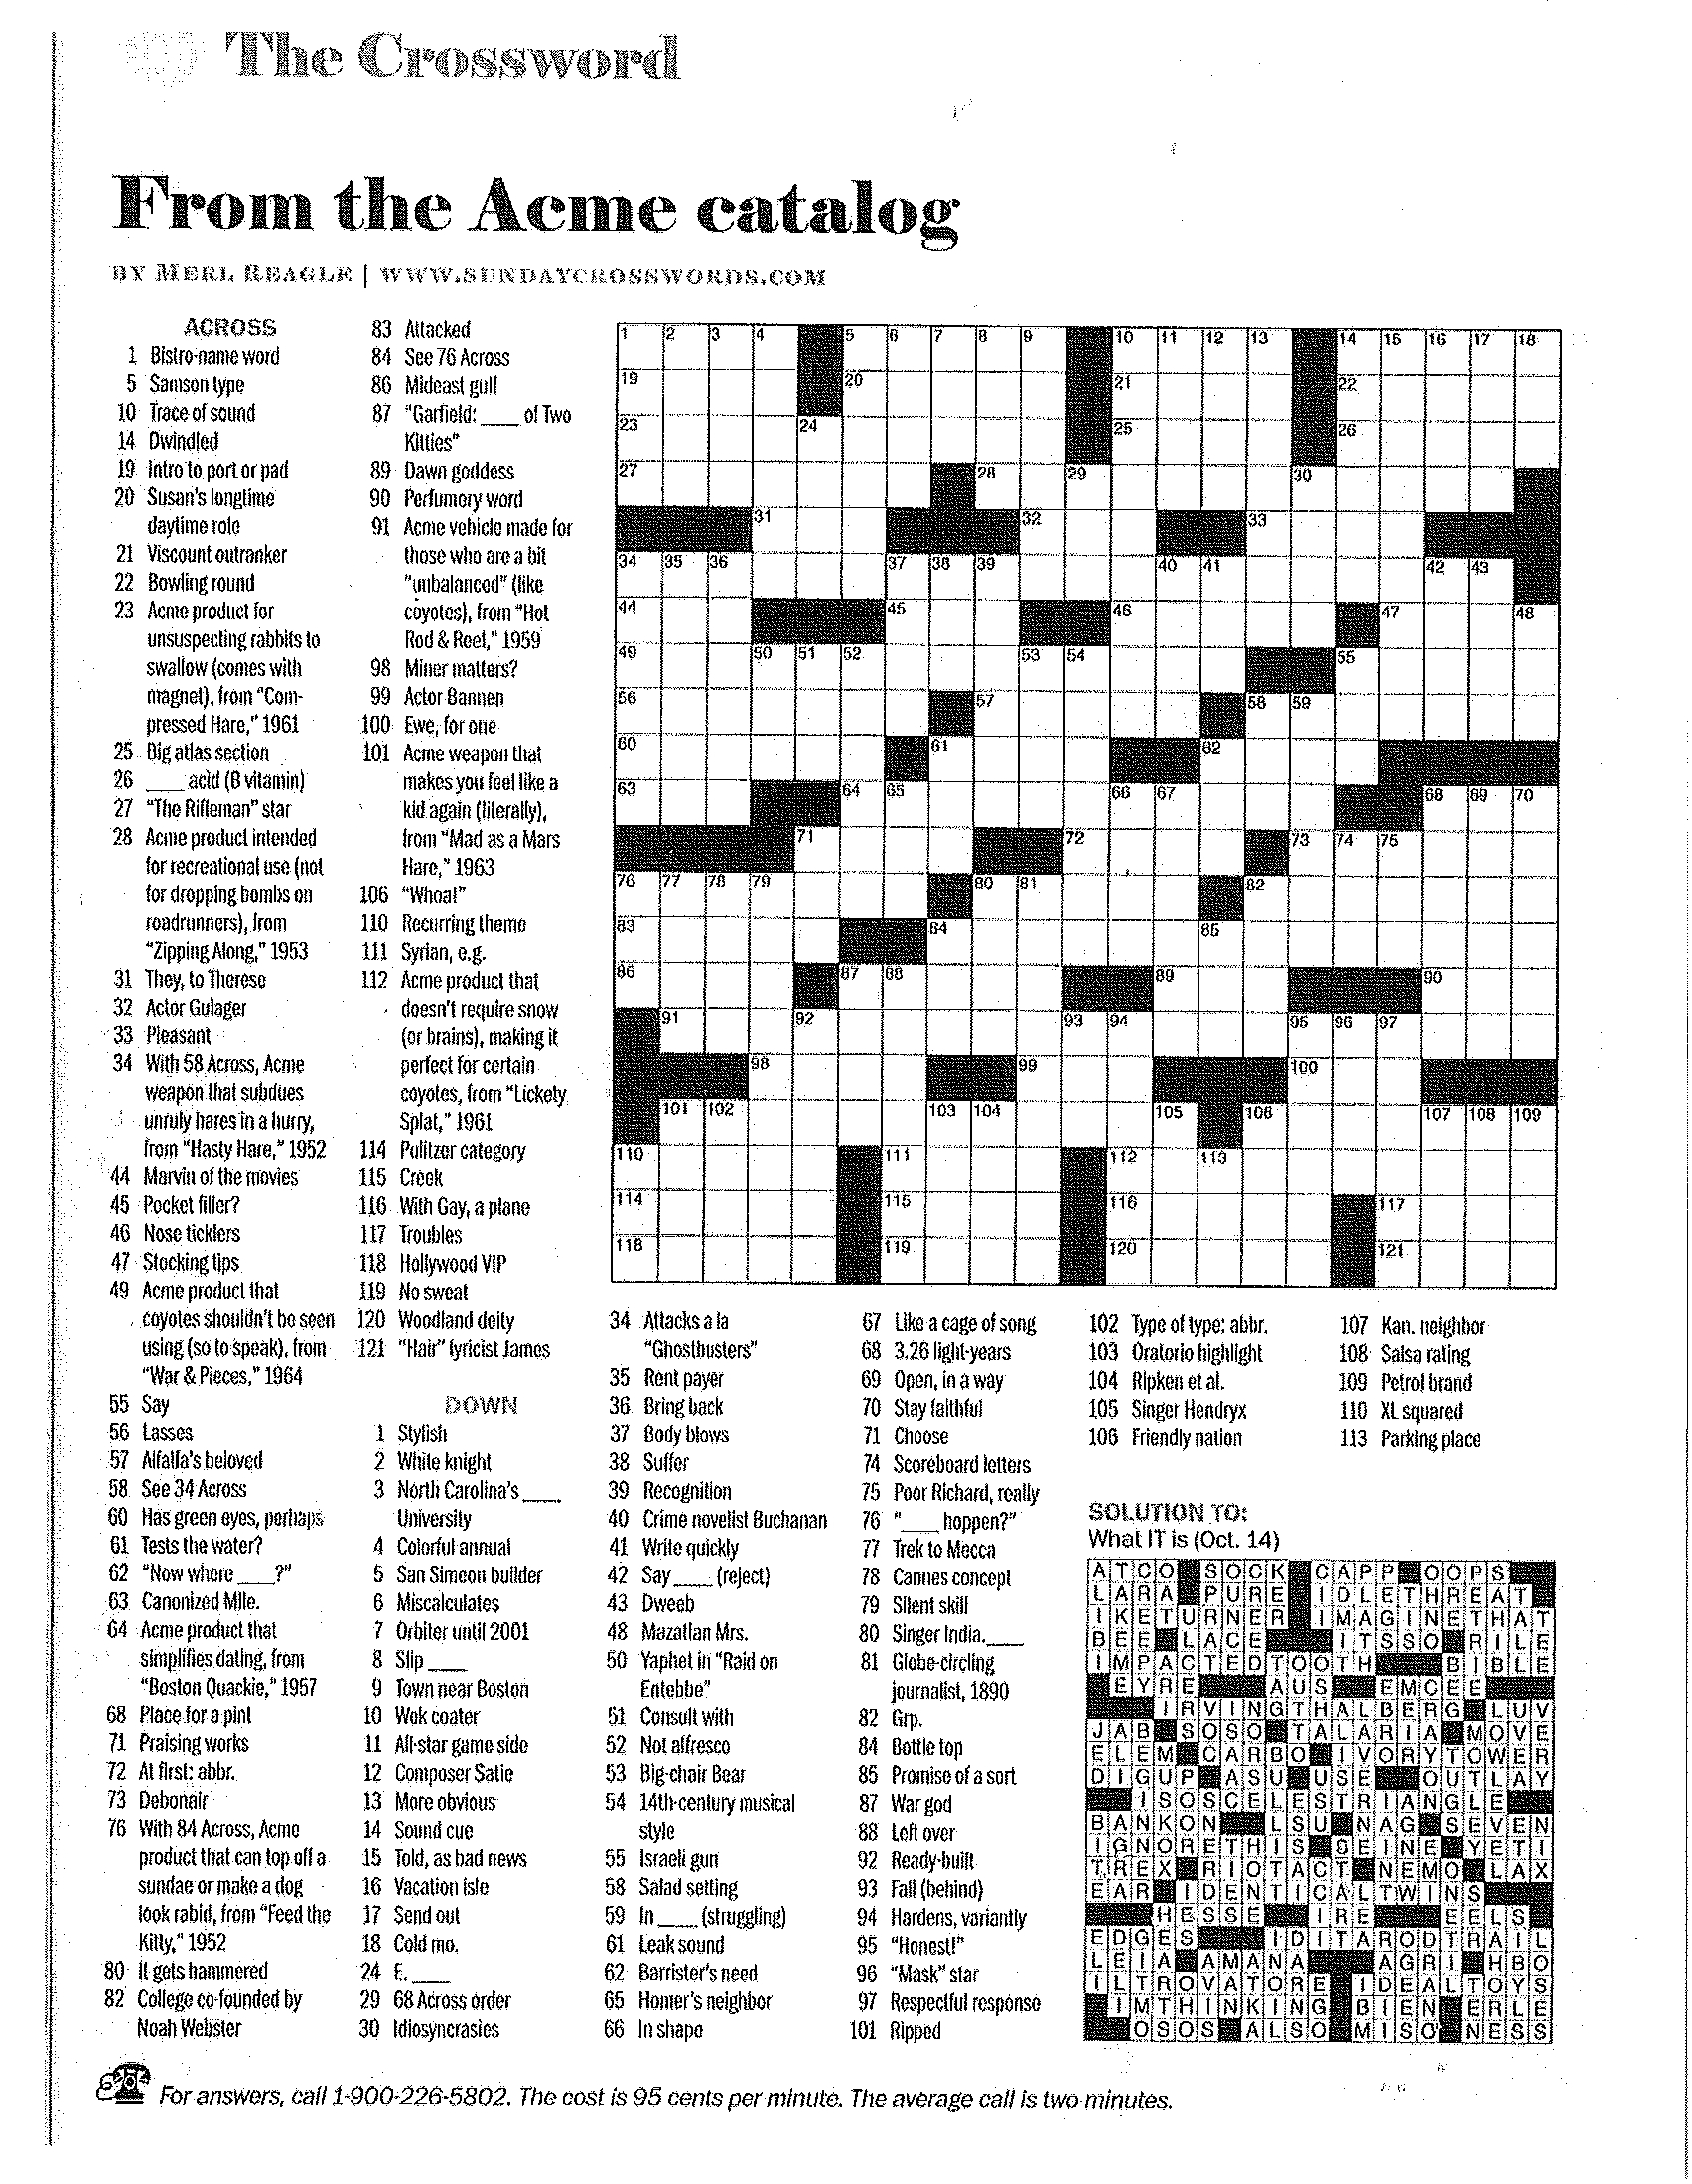 Printable Crossword Puzzles Merl Reagle | Download Them Or Print - Printable Crossword Puzzles Merl Reagle